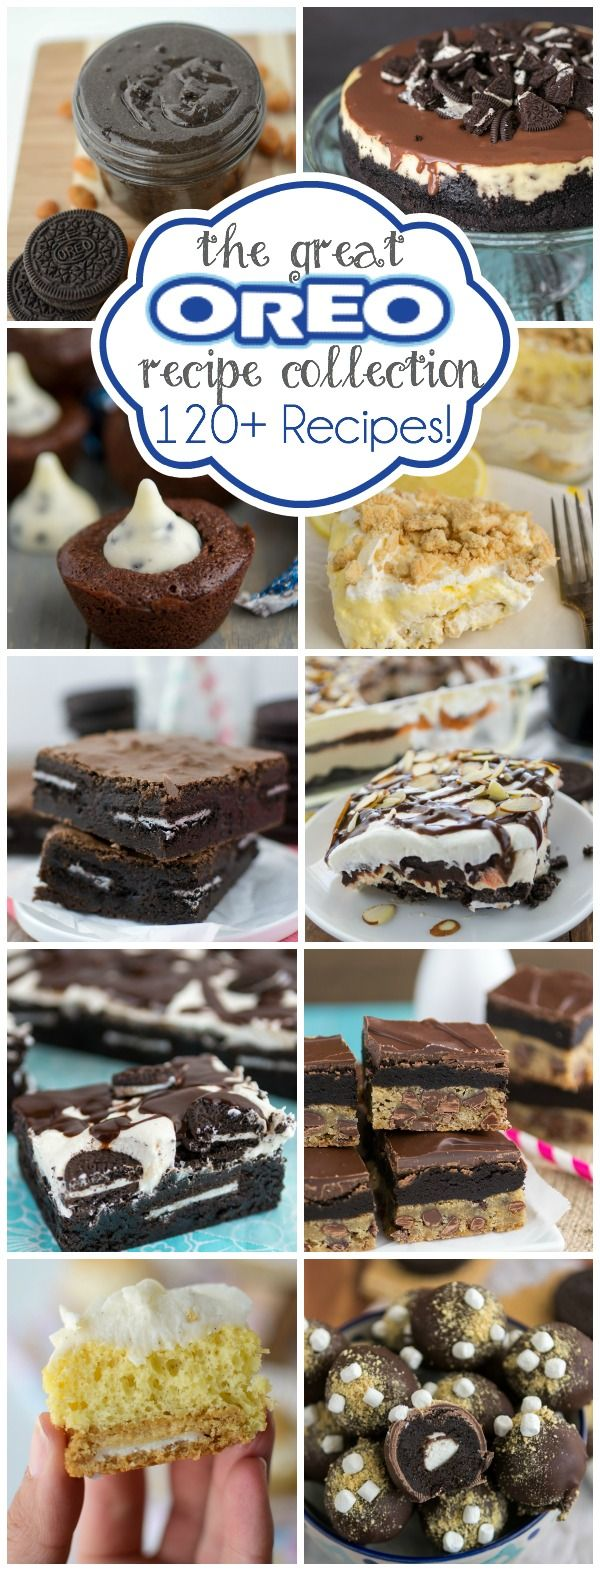 Over 120 Oreo Recipes using Oreos and Golden Oreos!